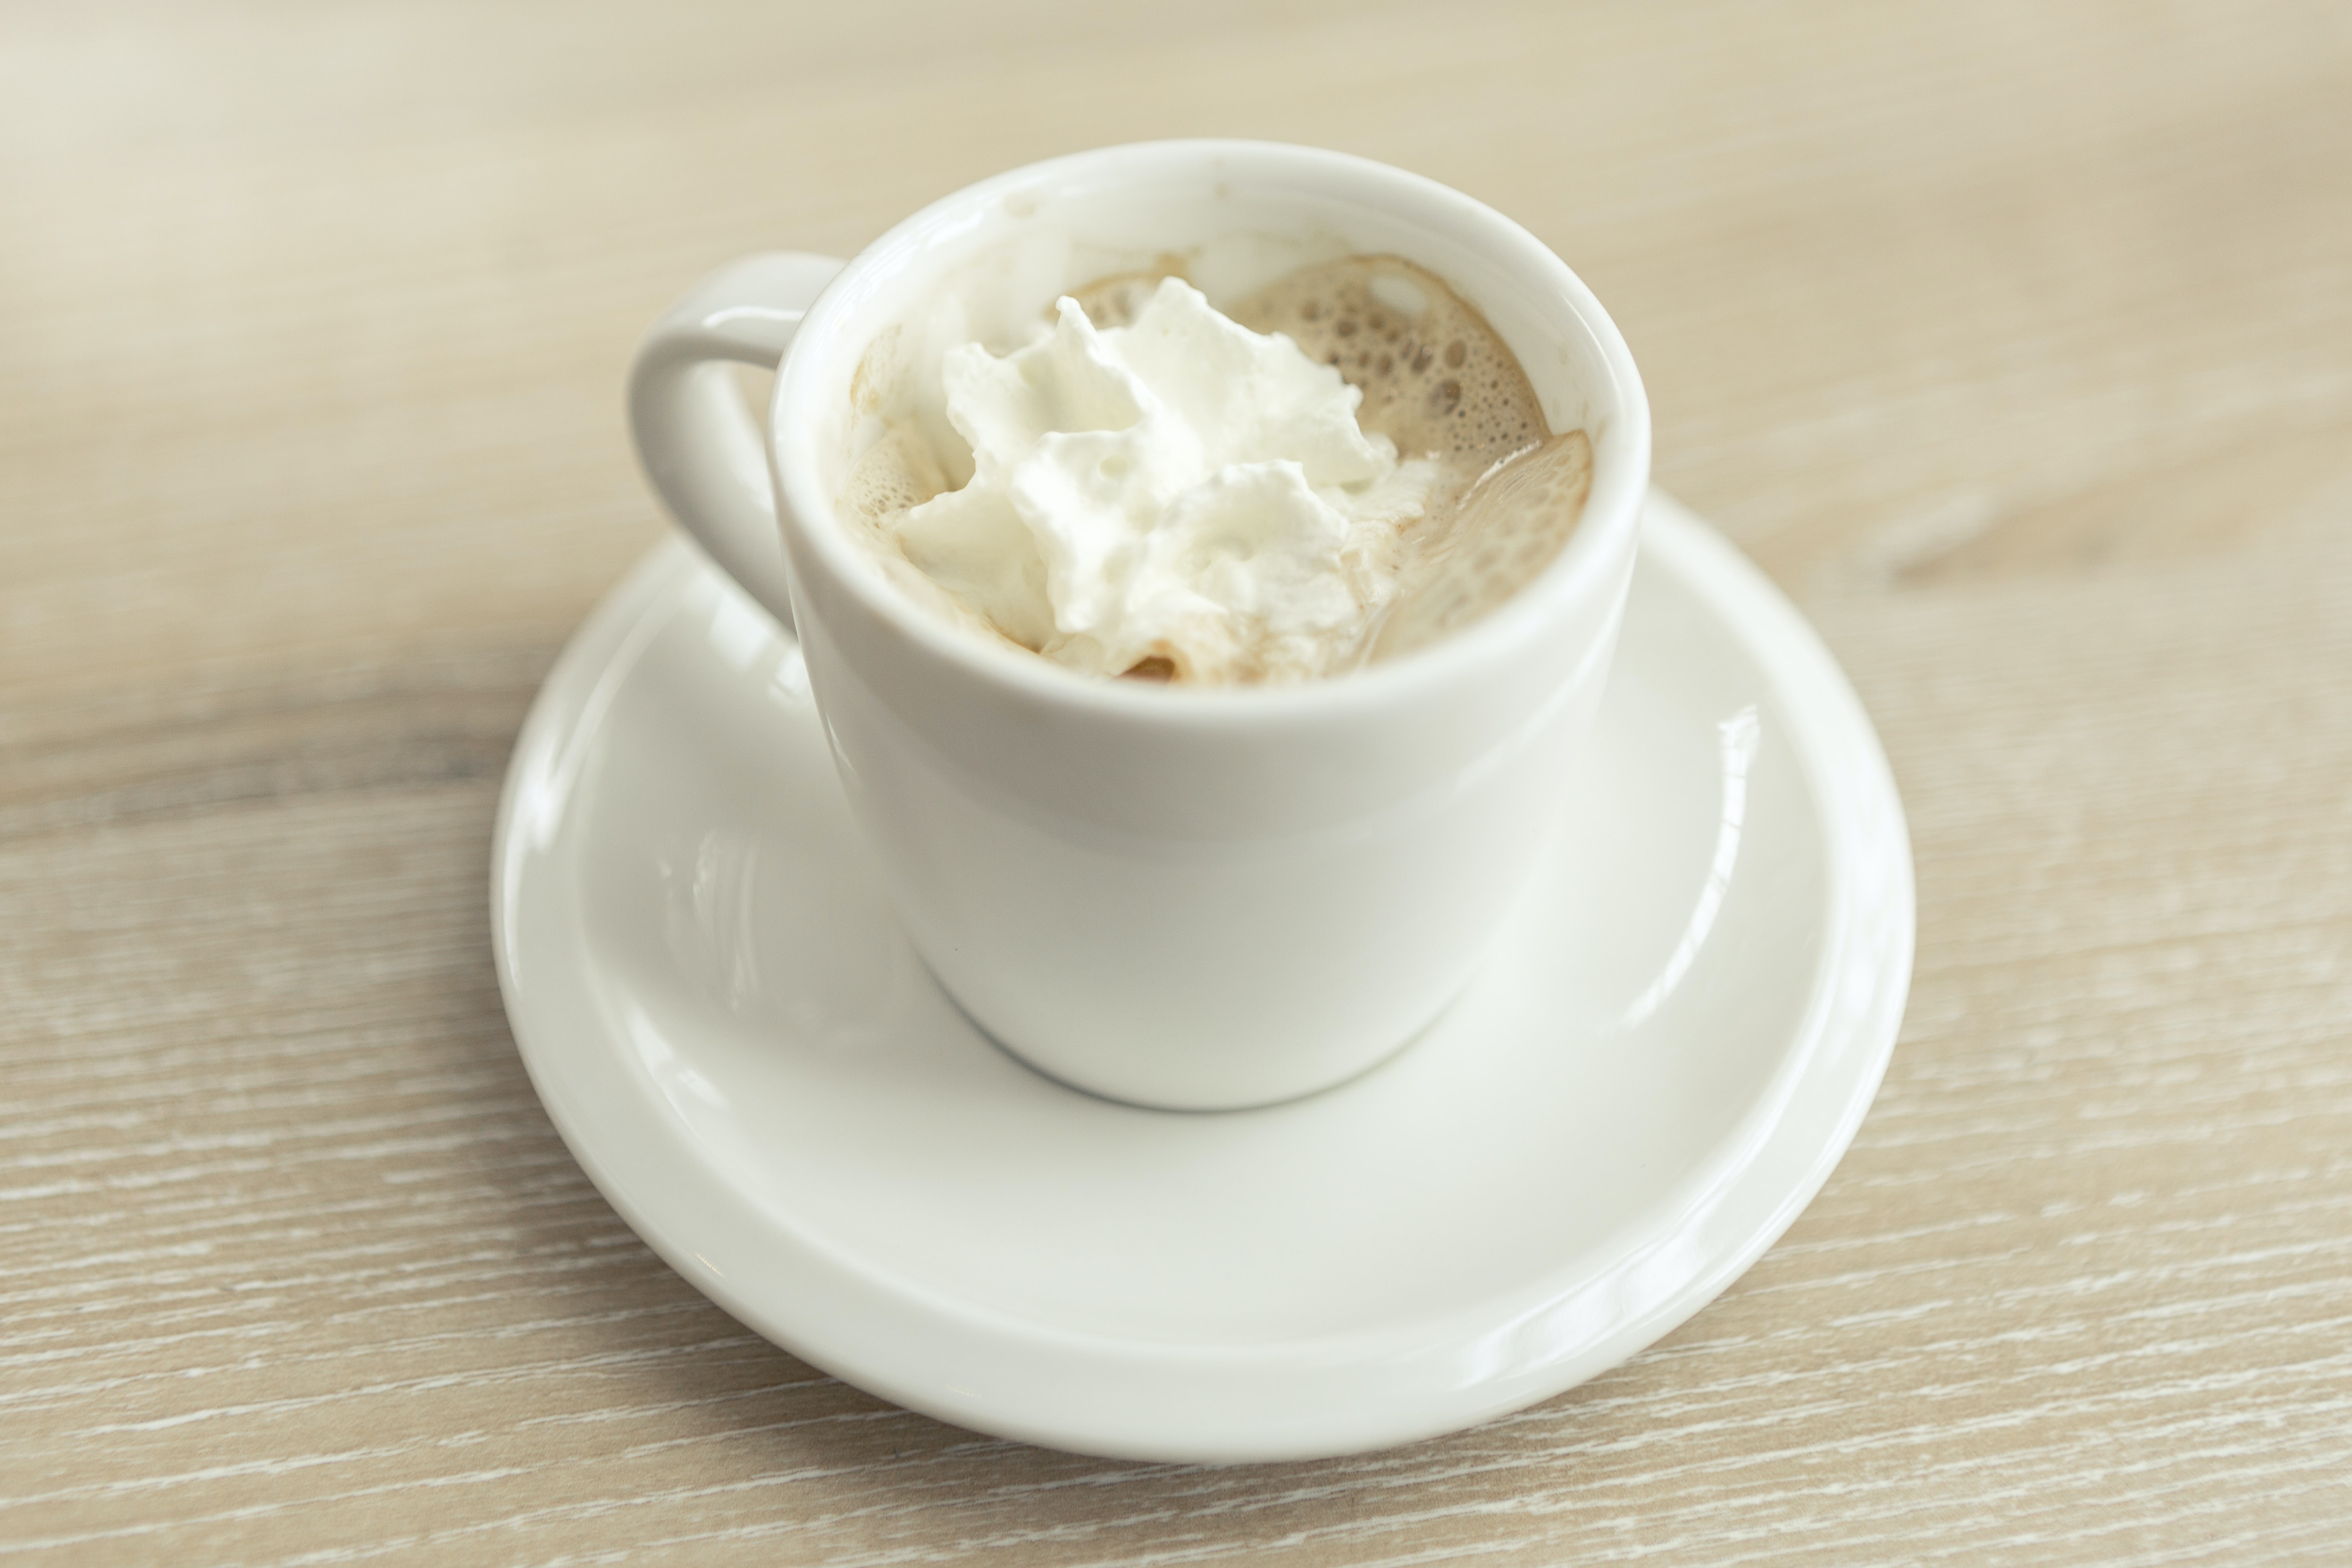 Espresso with whipped cream in a white mug on a white saucer with a light wooden table underneath